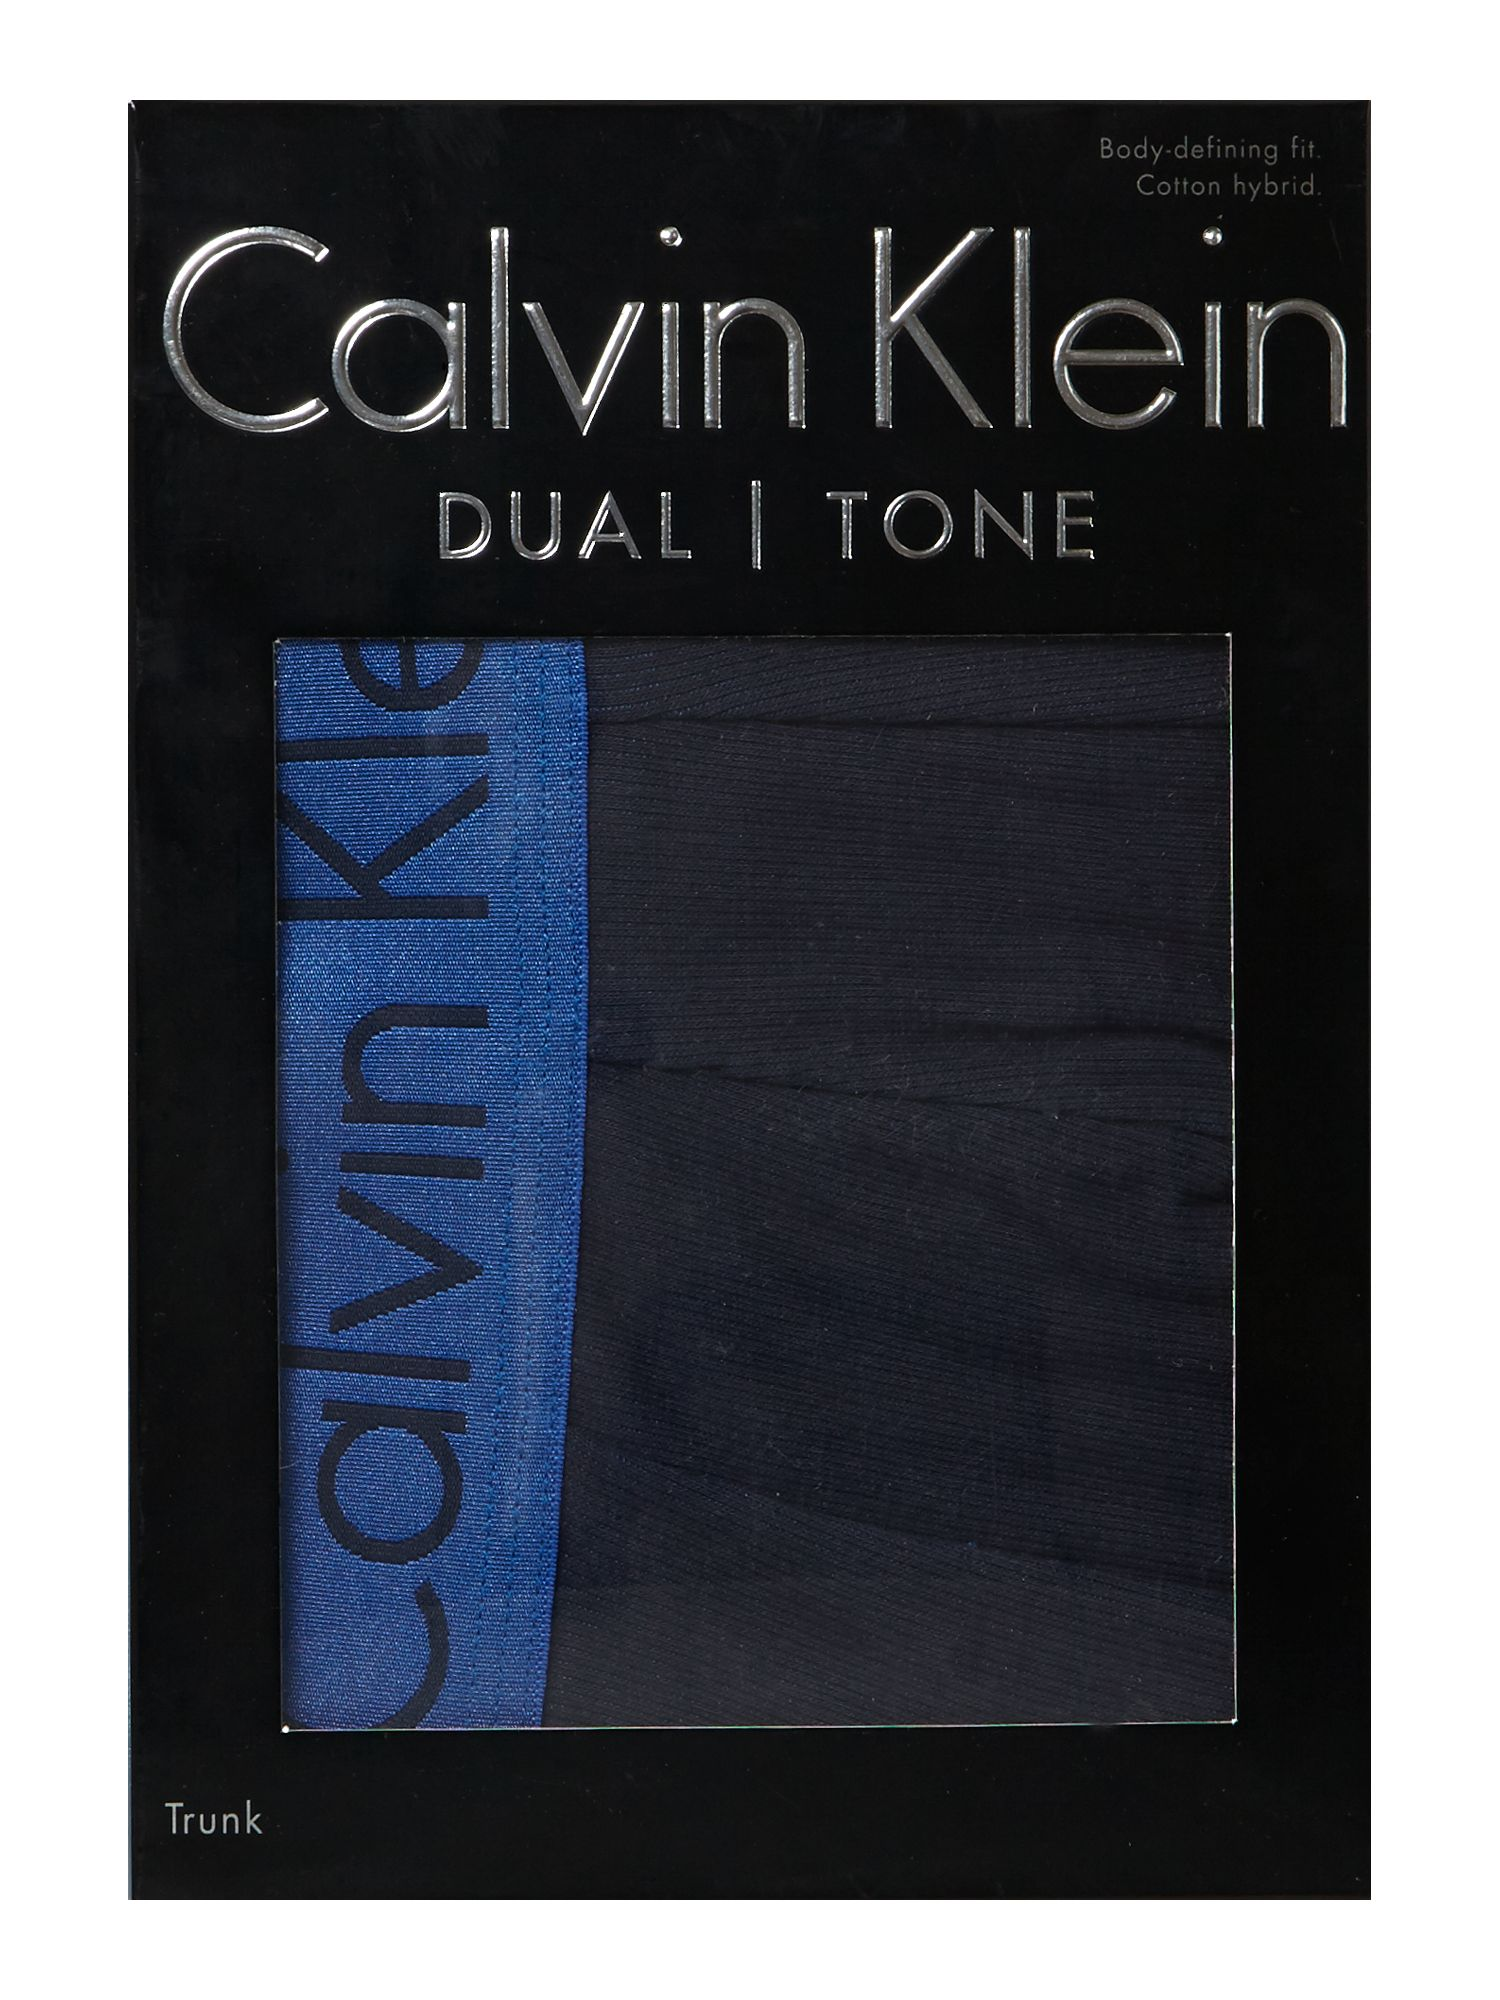 Dual tone ribbed trunk